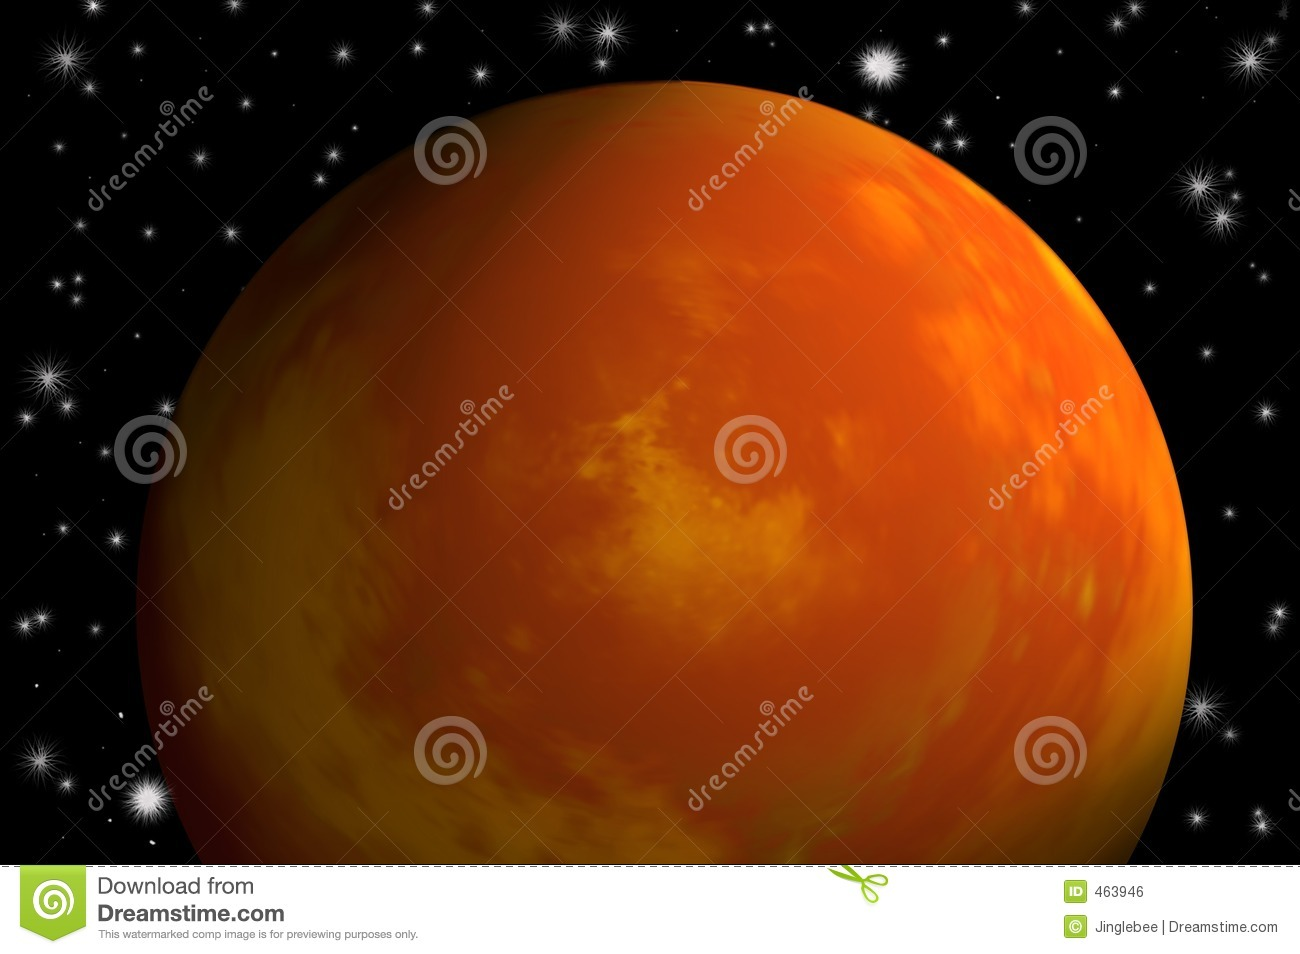 Download Planet mars stock illustration. Illustration of illustration - 463946